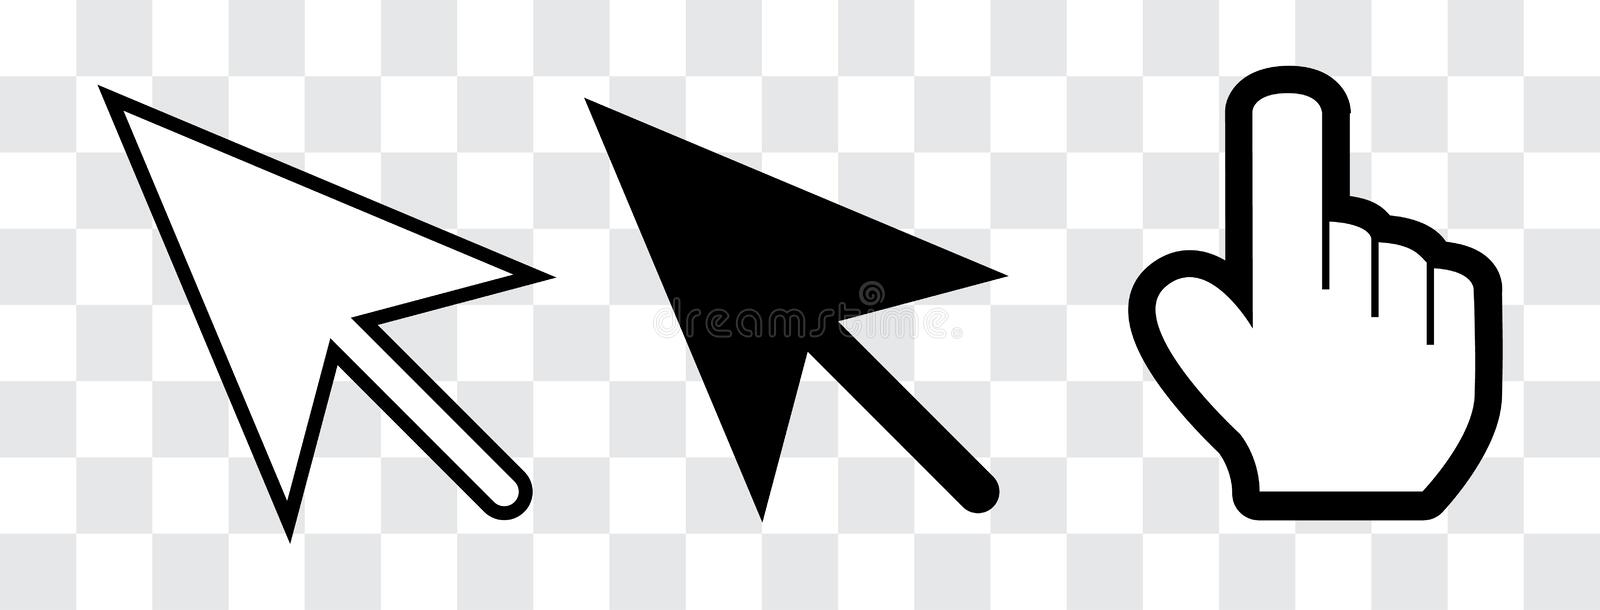 Arrow and hand cursor stock illustration